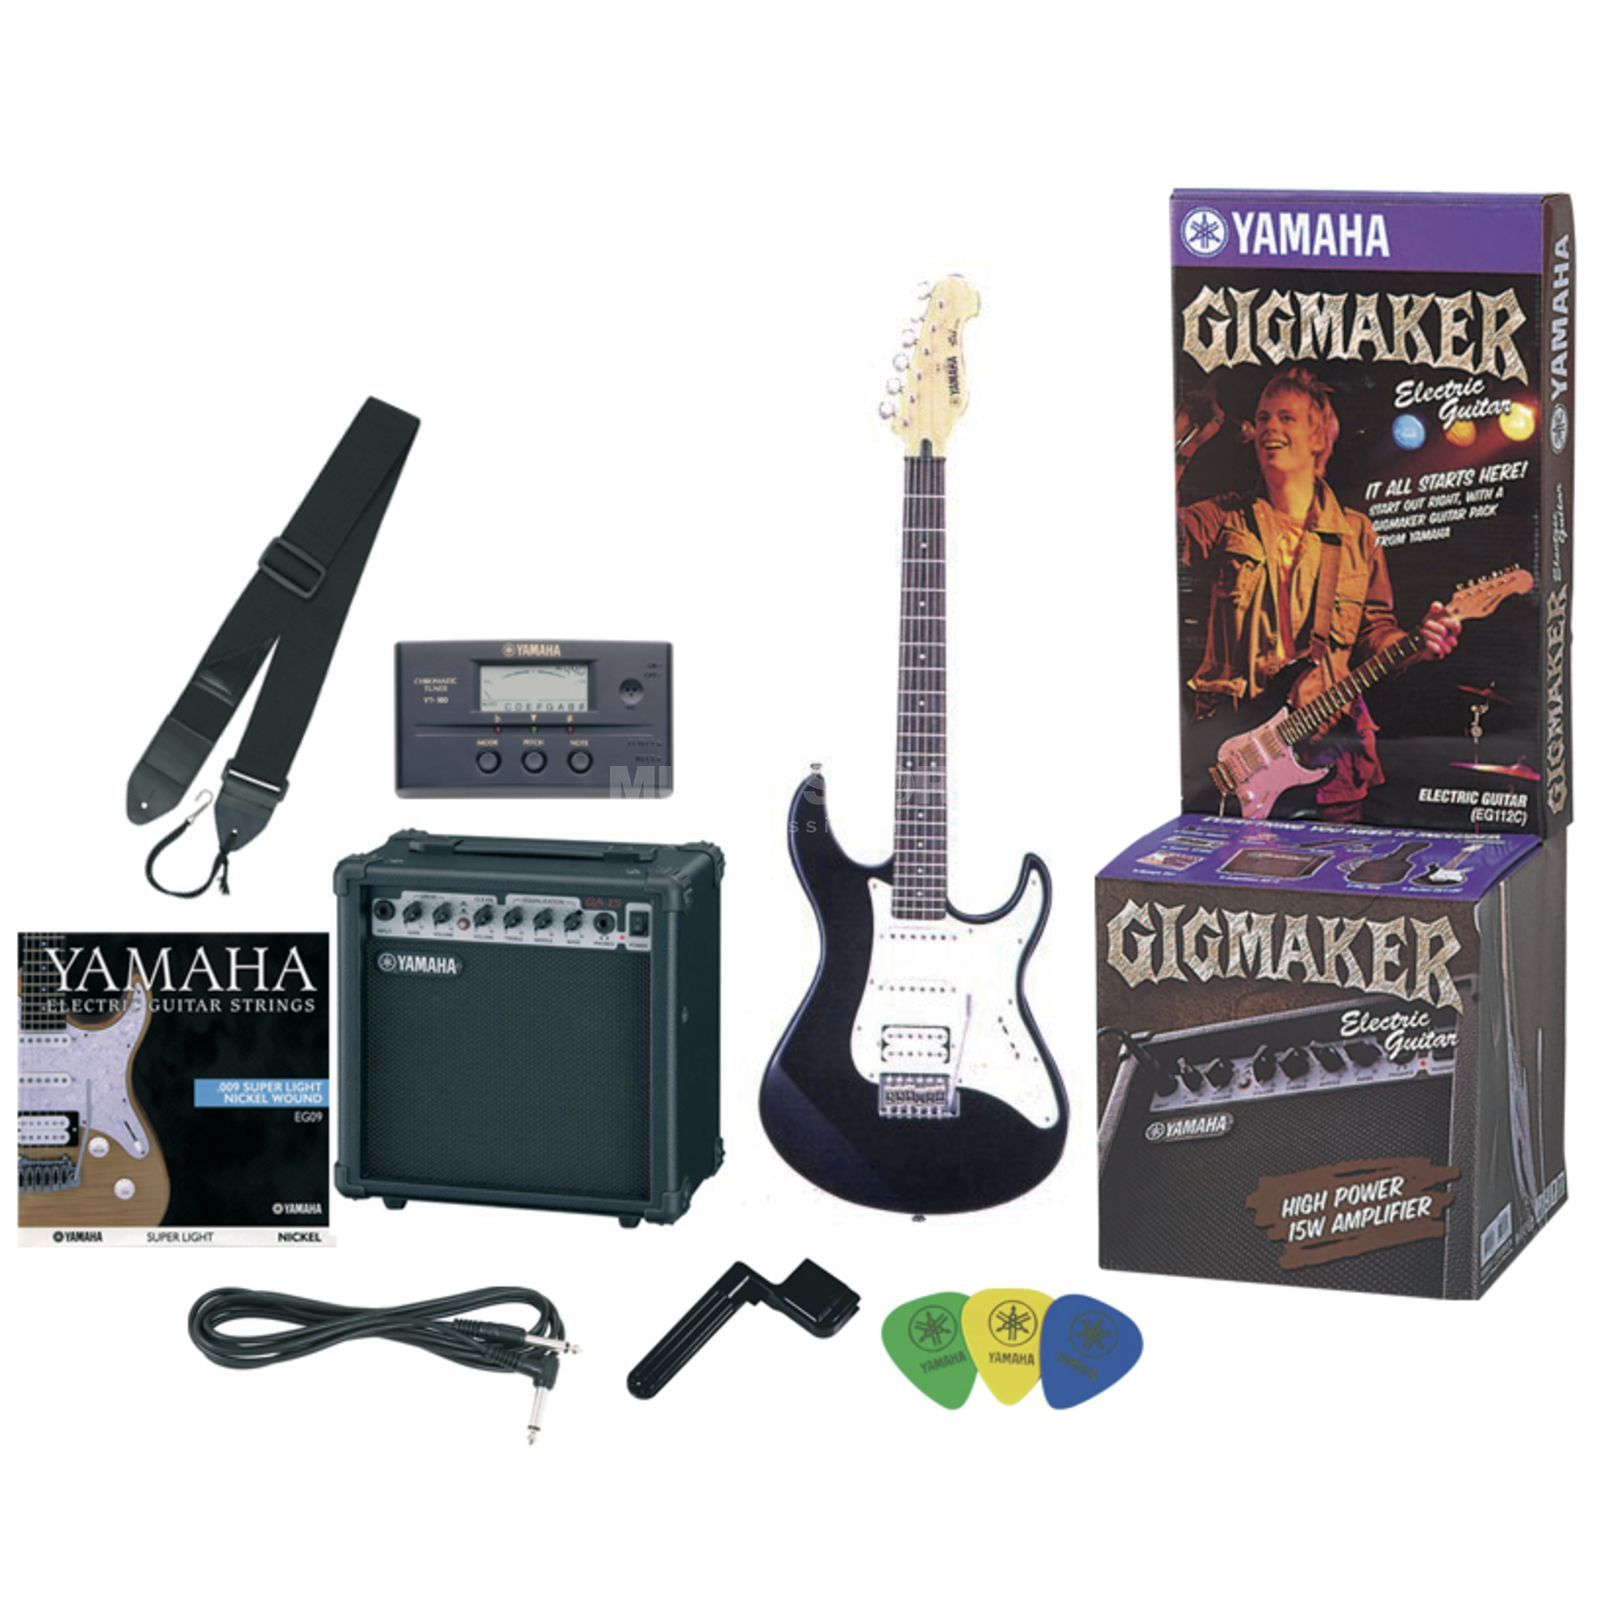 Yamaha EG-112GP Gigmaker Pack with Amp, Tuner and more Produktbillede